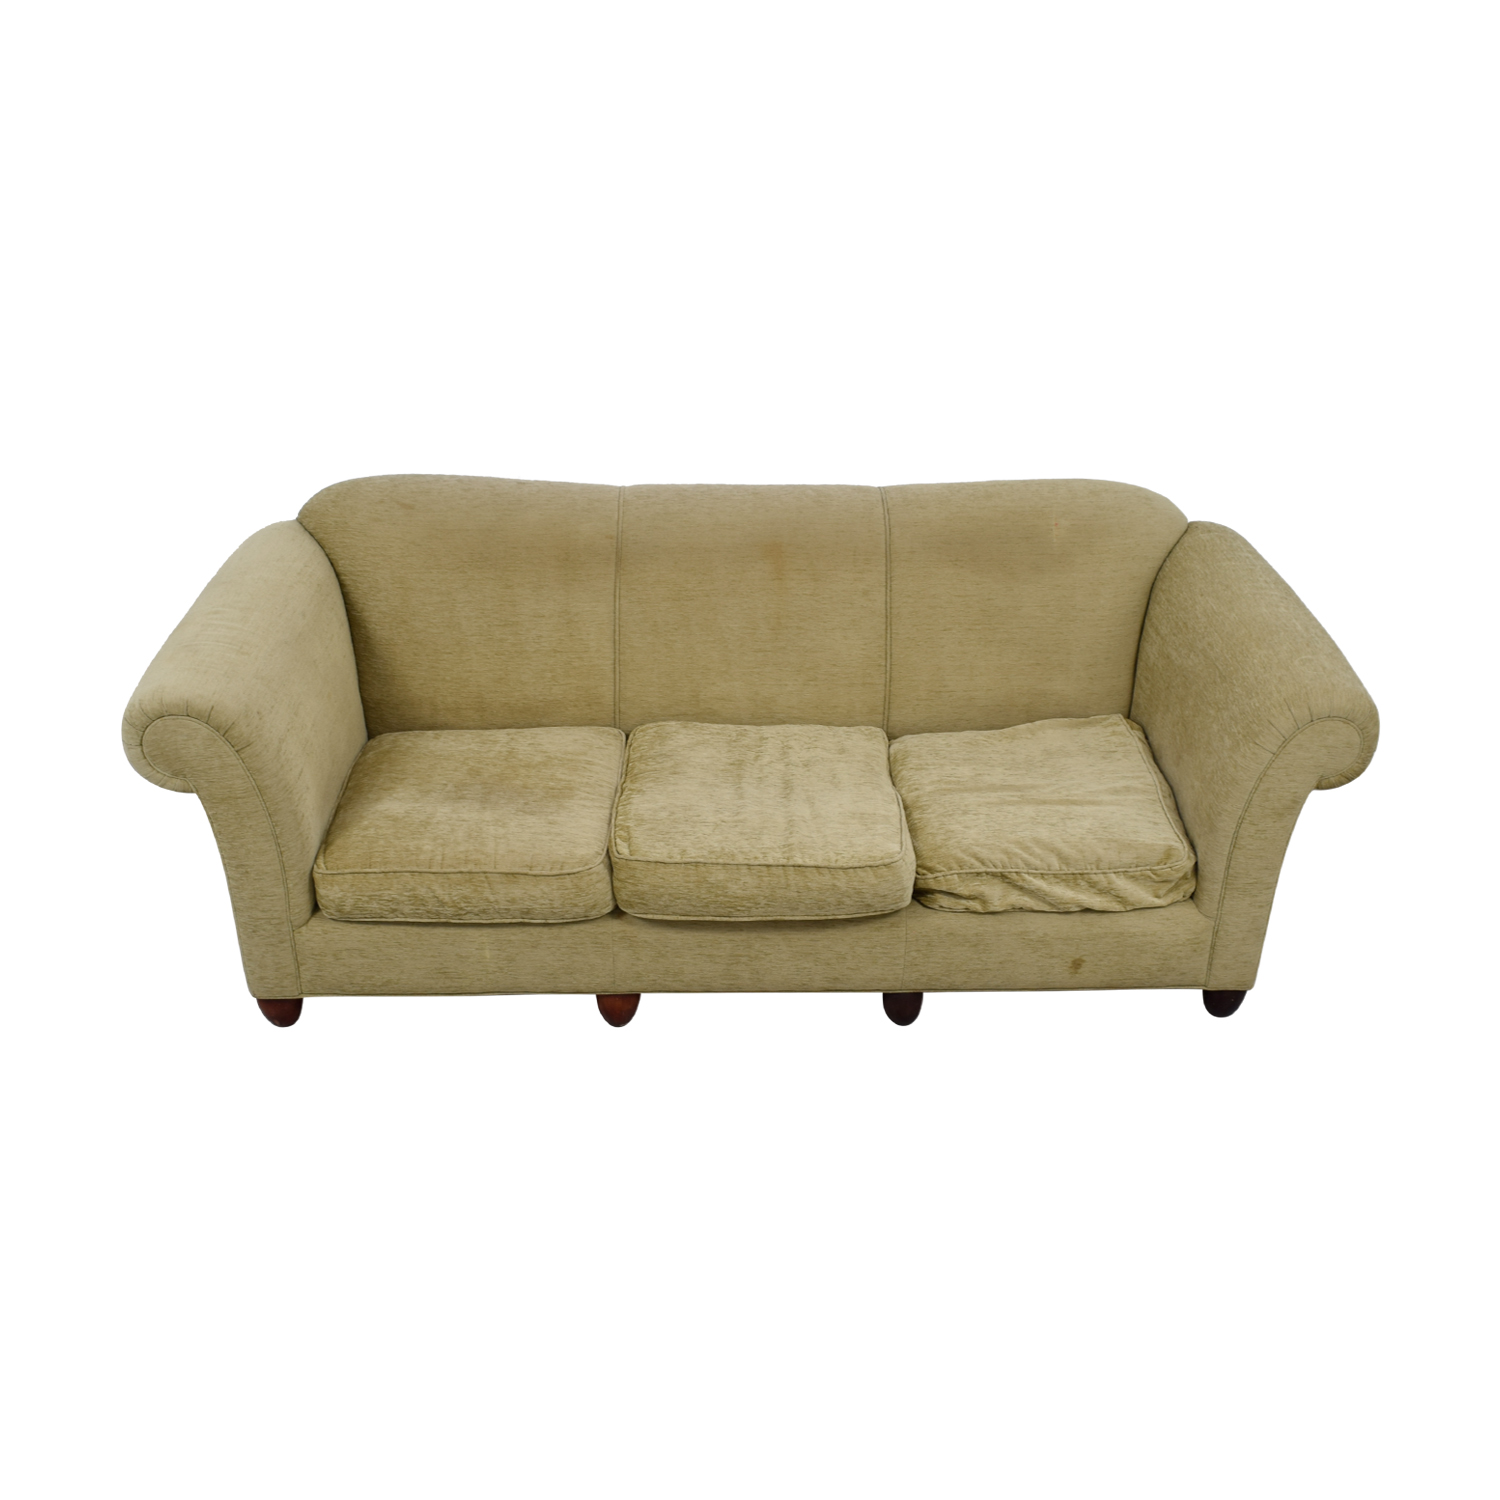 shop Tan Three-Cushion Couch